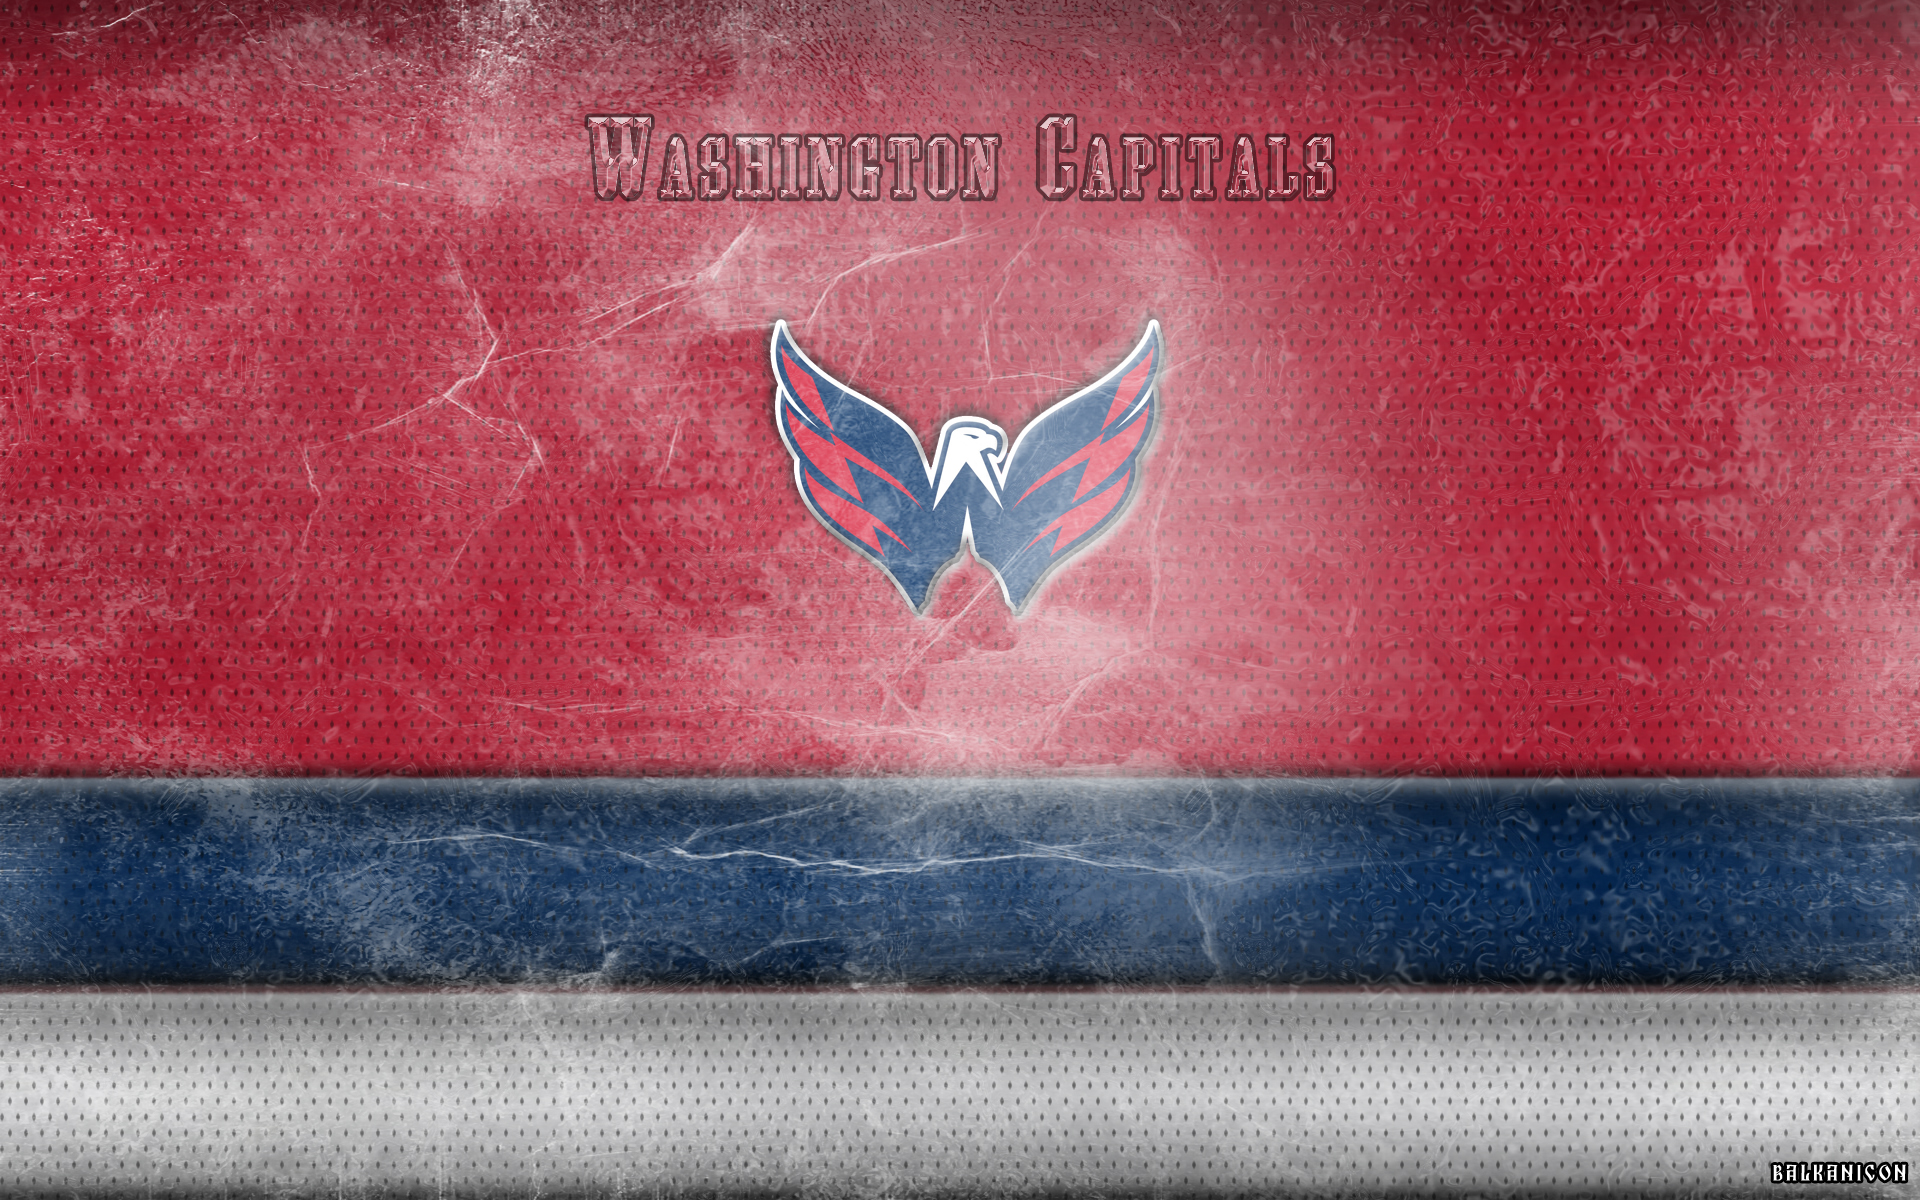 washington capitals wallpaper by balkanicon on deviantart